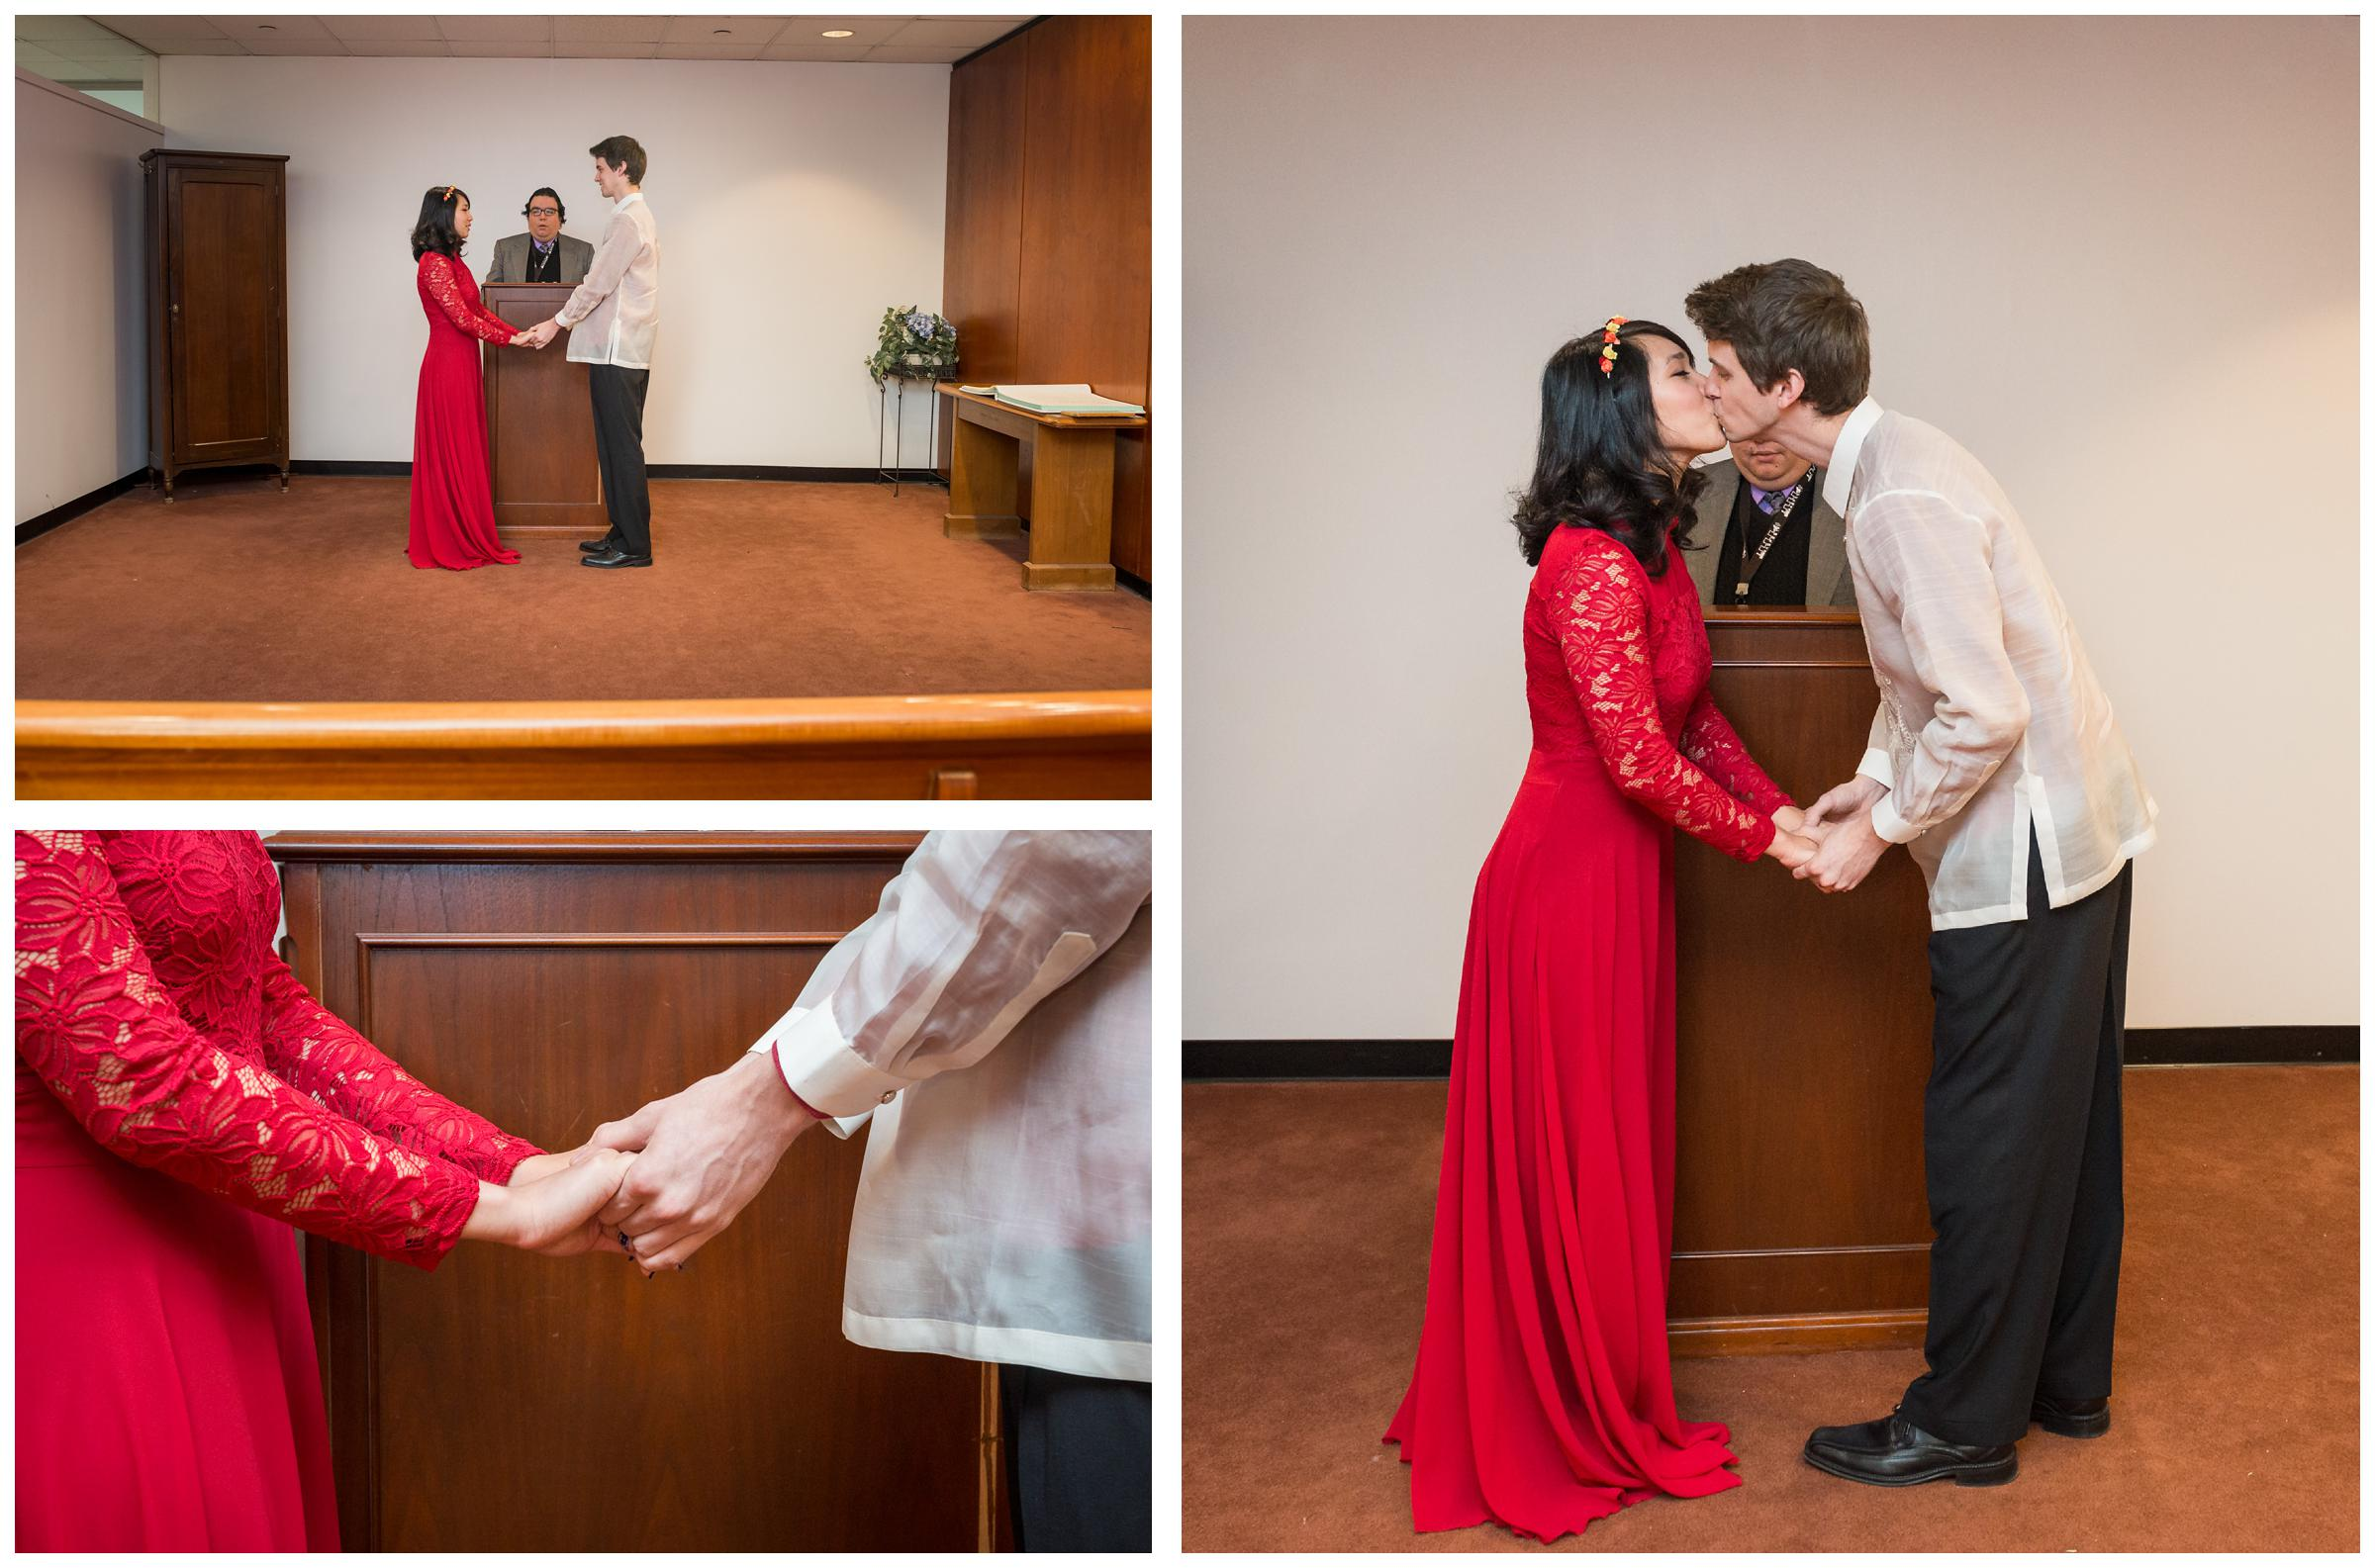 first kiss during elopement wedding at Montgomery County Courthouse in Rockville, Maryland